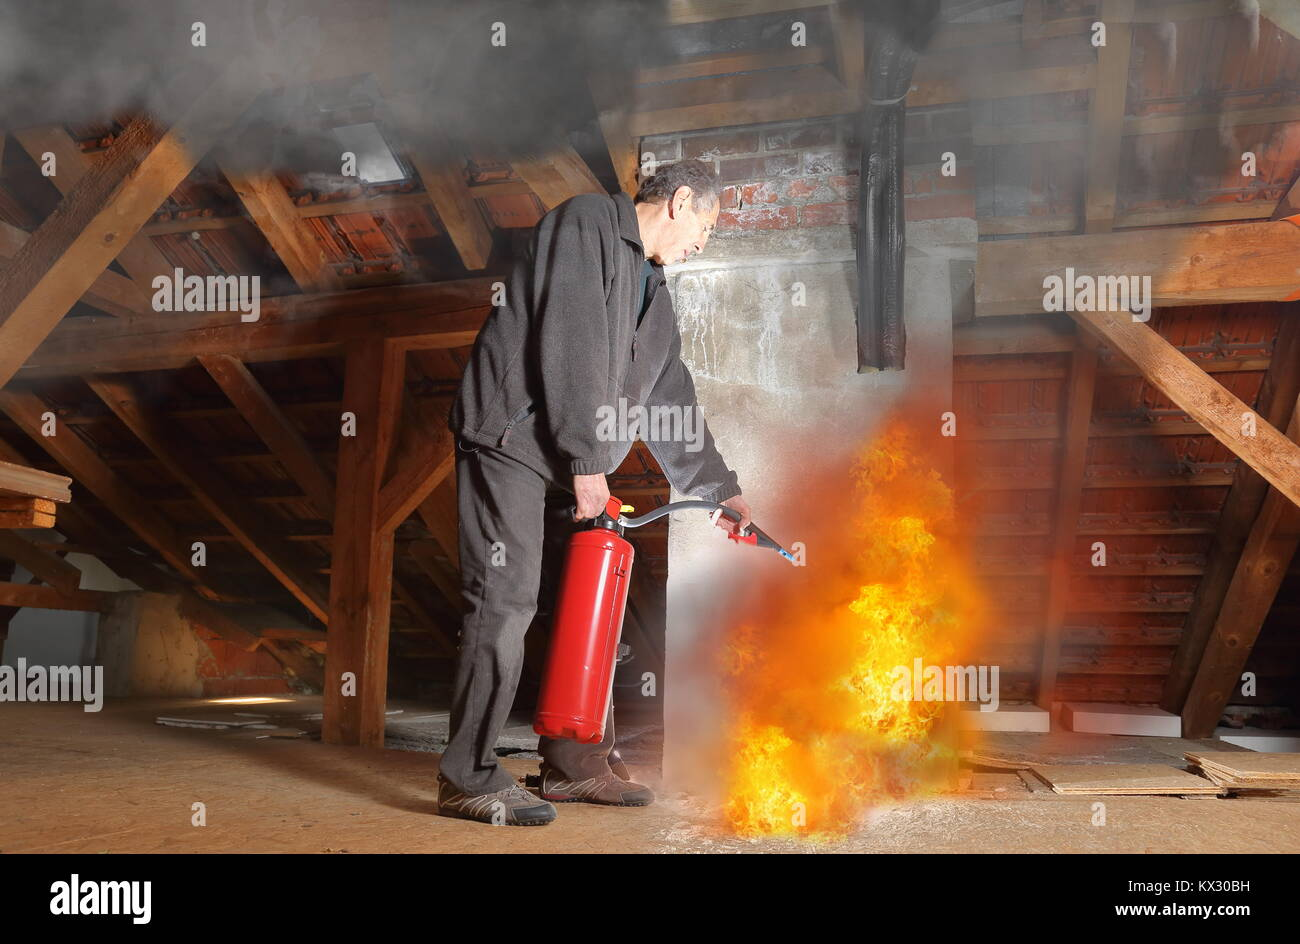 A Man with fire extinguisher fighting agains fire in his house - Stock Image